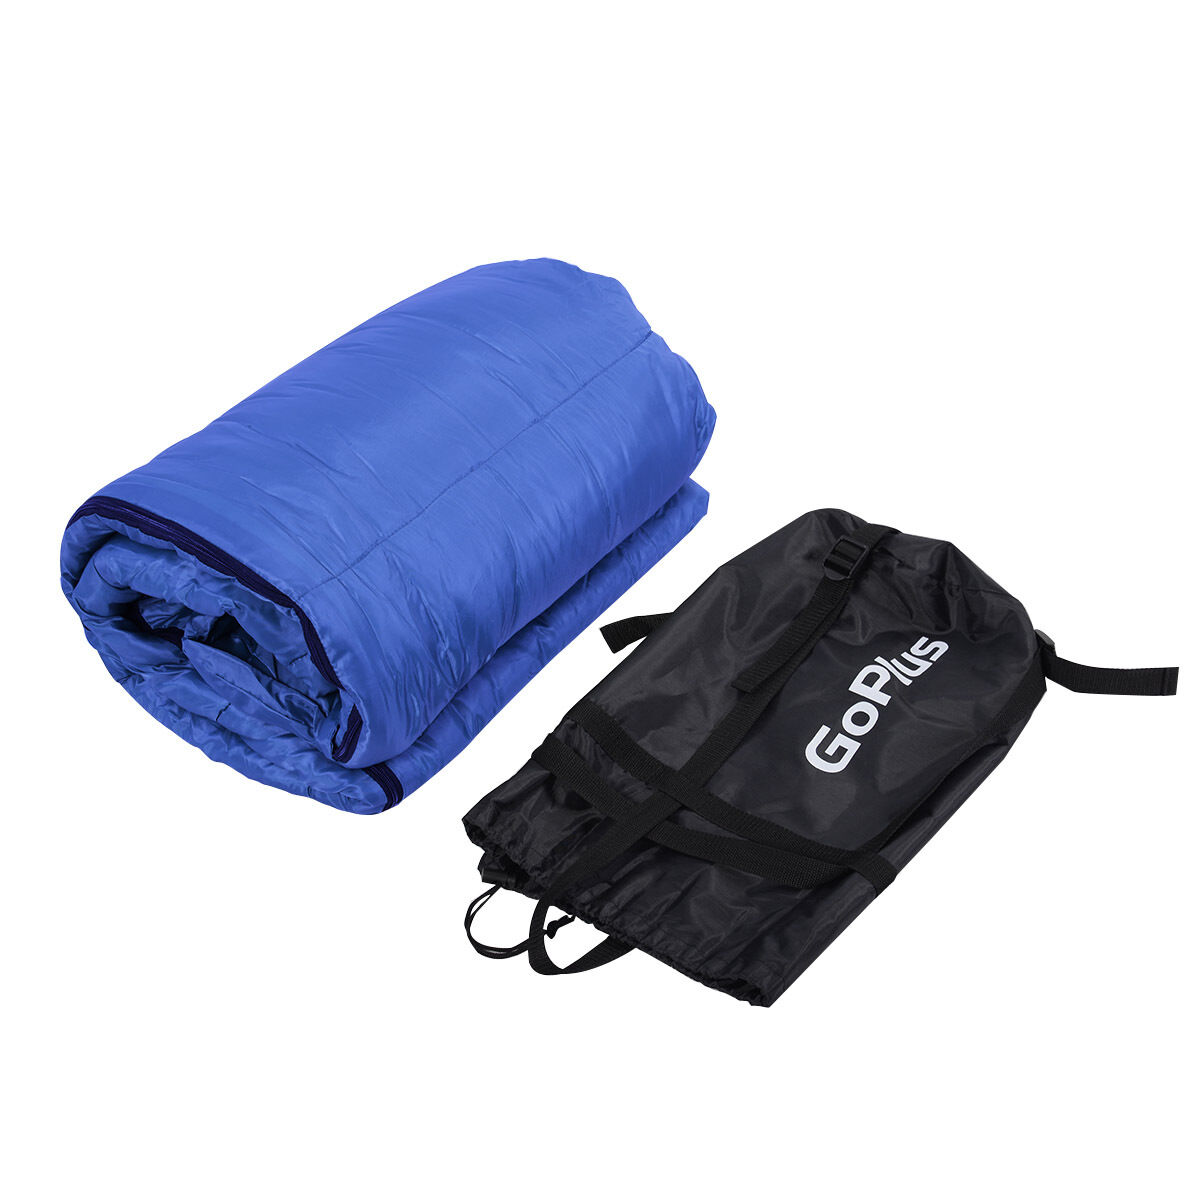 New-Mummy-Waterproof-Outdoor-Sleeping-Bag-Camping-Travel-Hiking-W-Carrying-Bag thumbnail 6